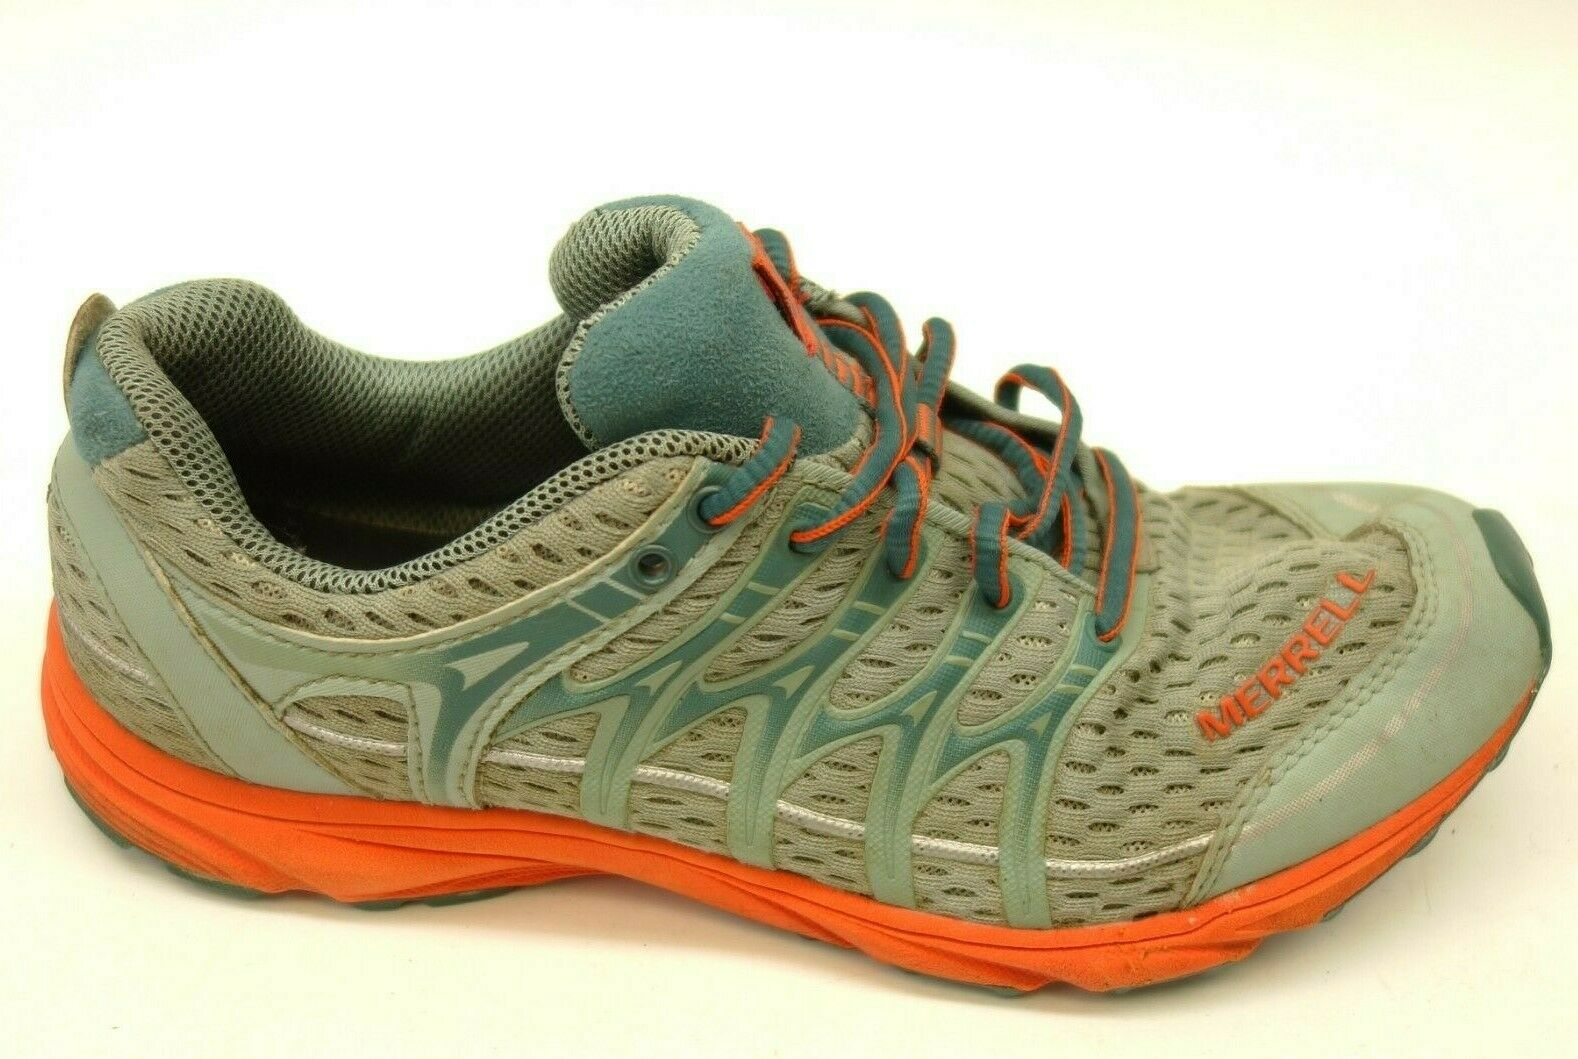 Merrell Mix Master Glide US 7.5 EU 38 Green orange Athletic Outdoor Trail shoes